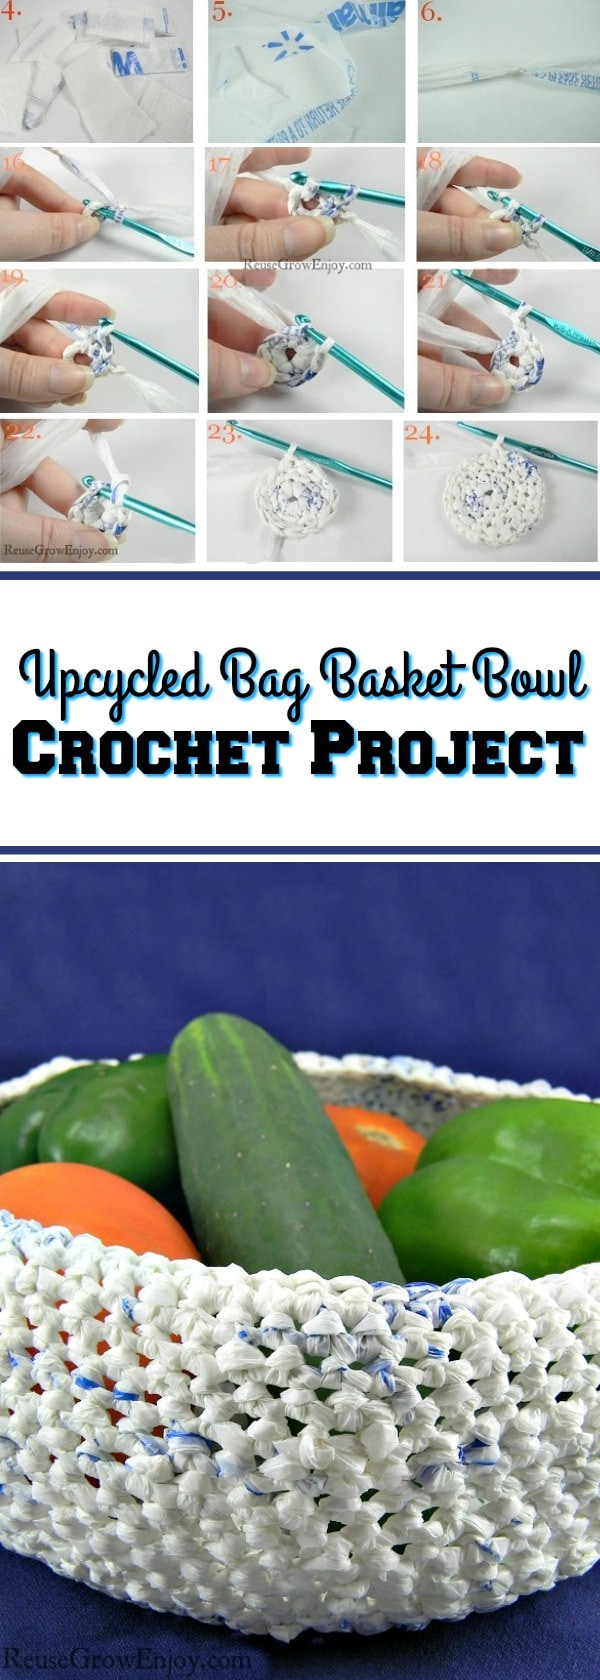 You can upcycle plastic bags into all kinds of things like jewelry, hand bags and more. Check out this idea to use upcycled bags to make a basket bowl.